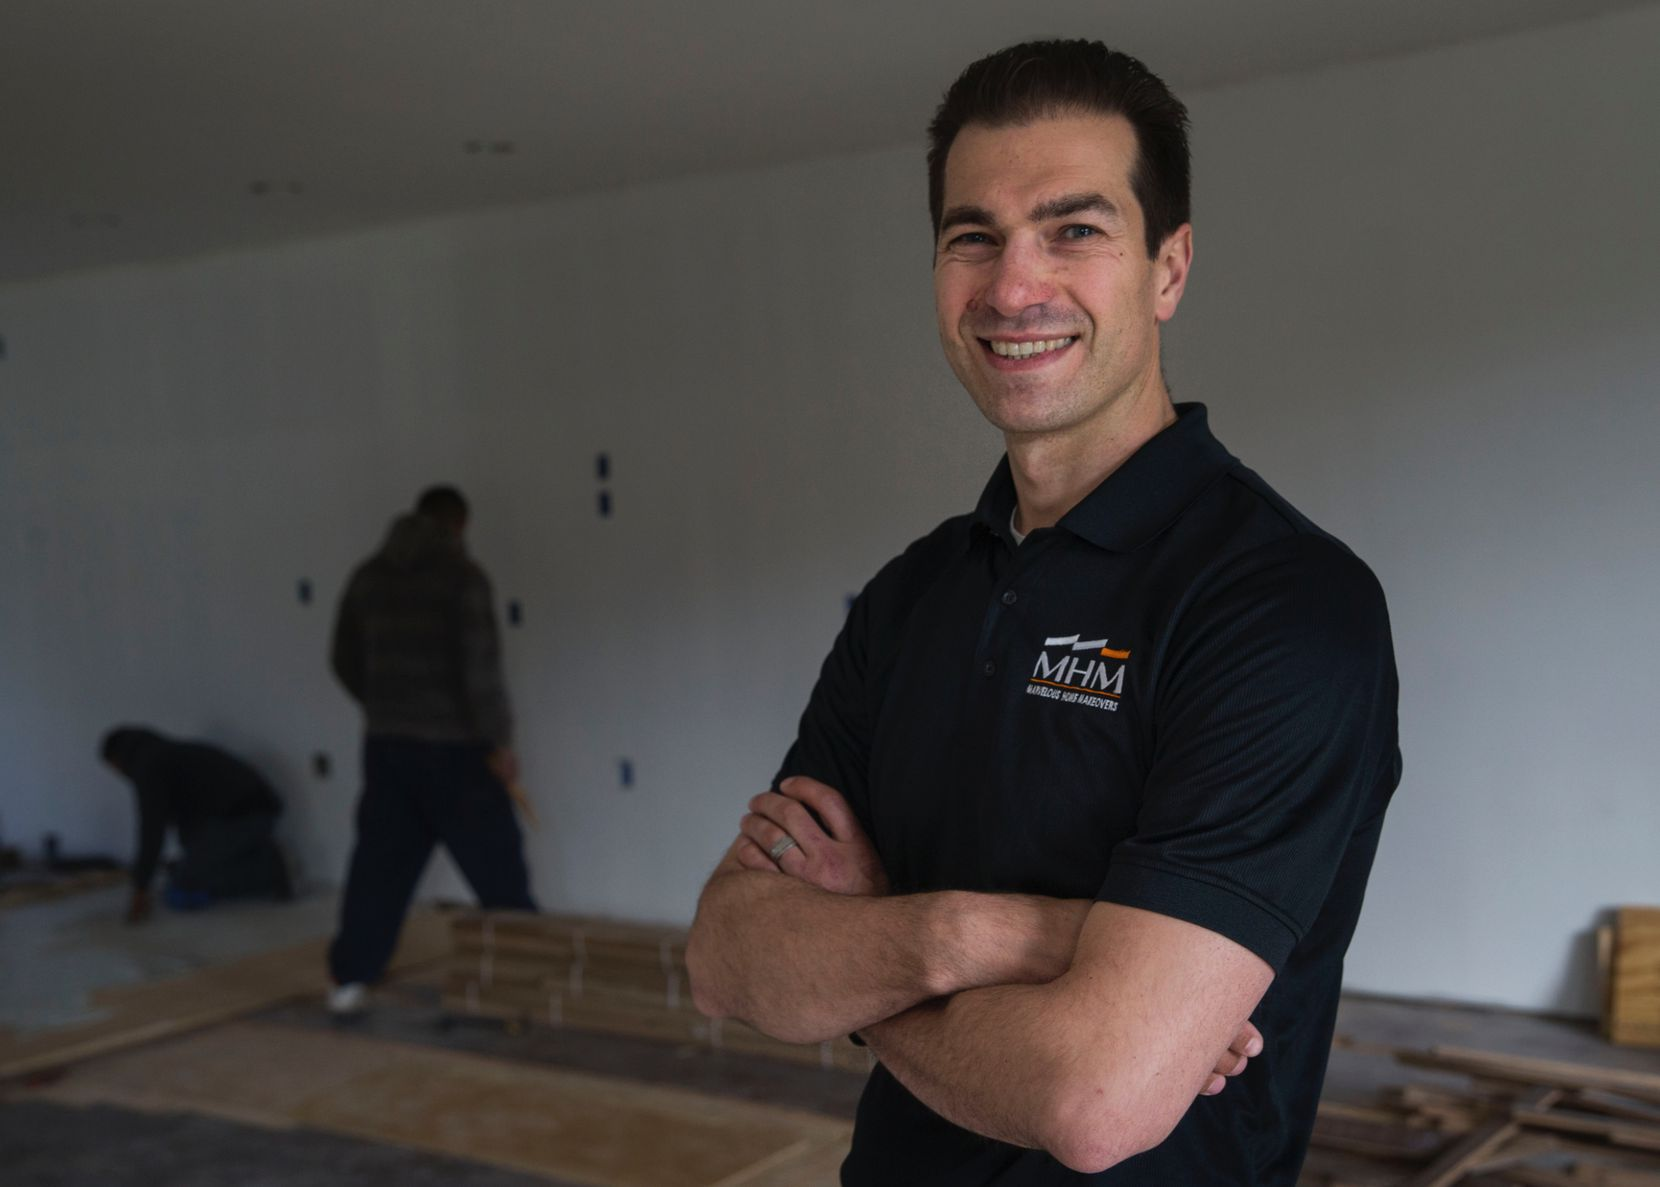 Botond Laszlo, who heads the Dallas chapter of the National Association of the Remodeling Industry, owns Marvelous Home Makeovers.